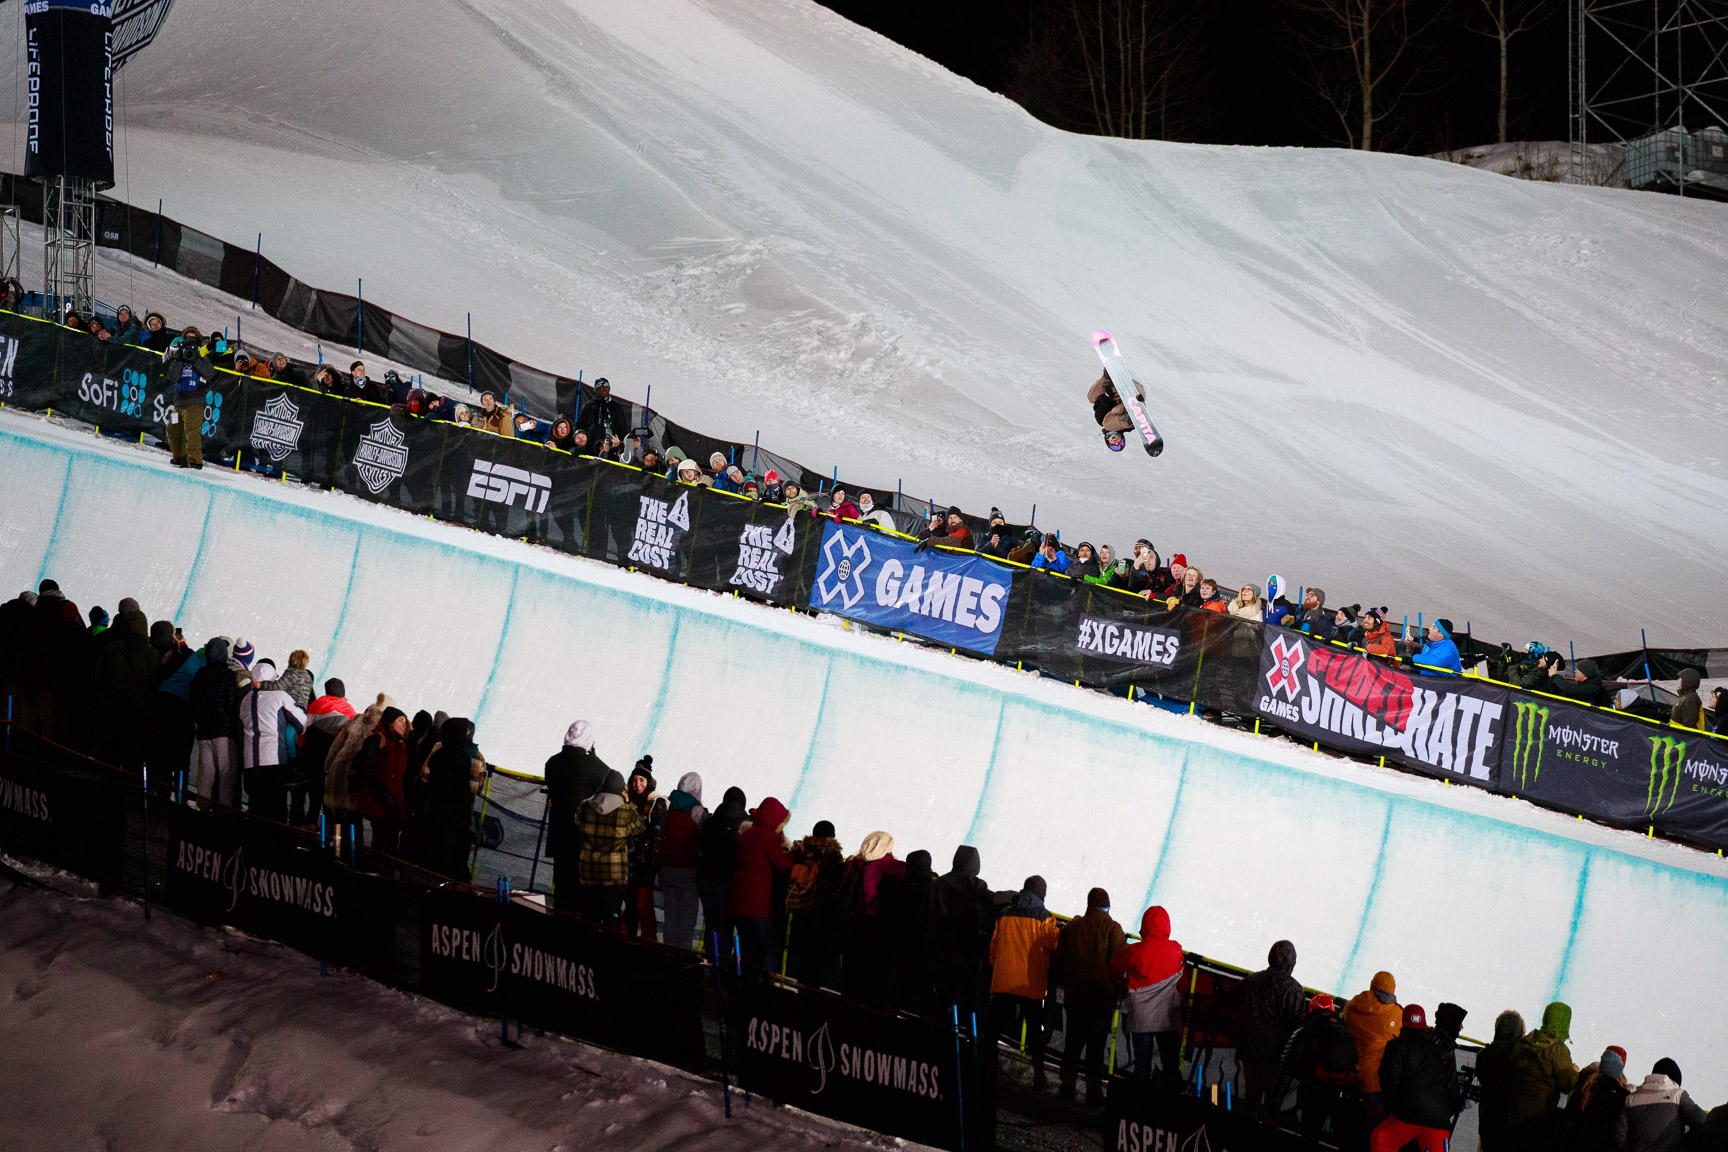 Chase Josey, Men's Snowboard SuperPipe Final